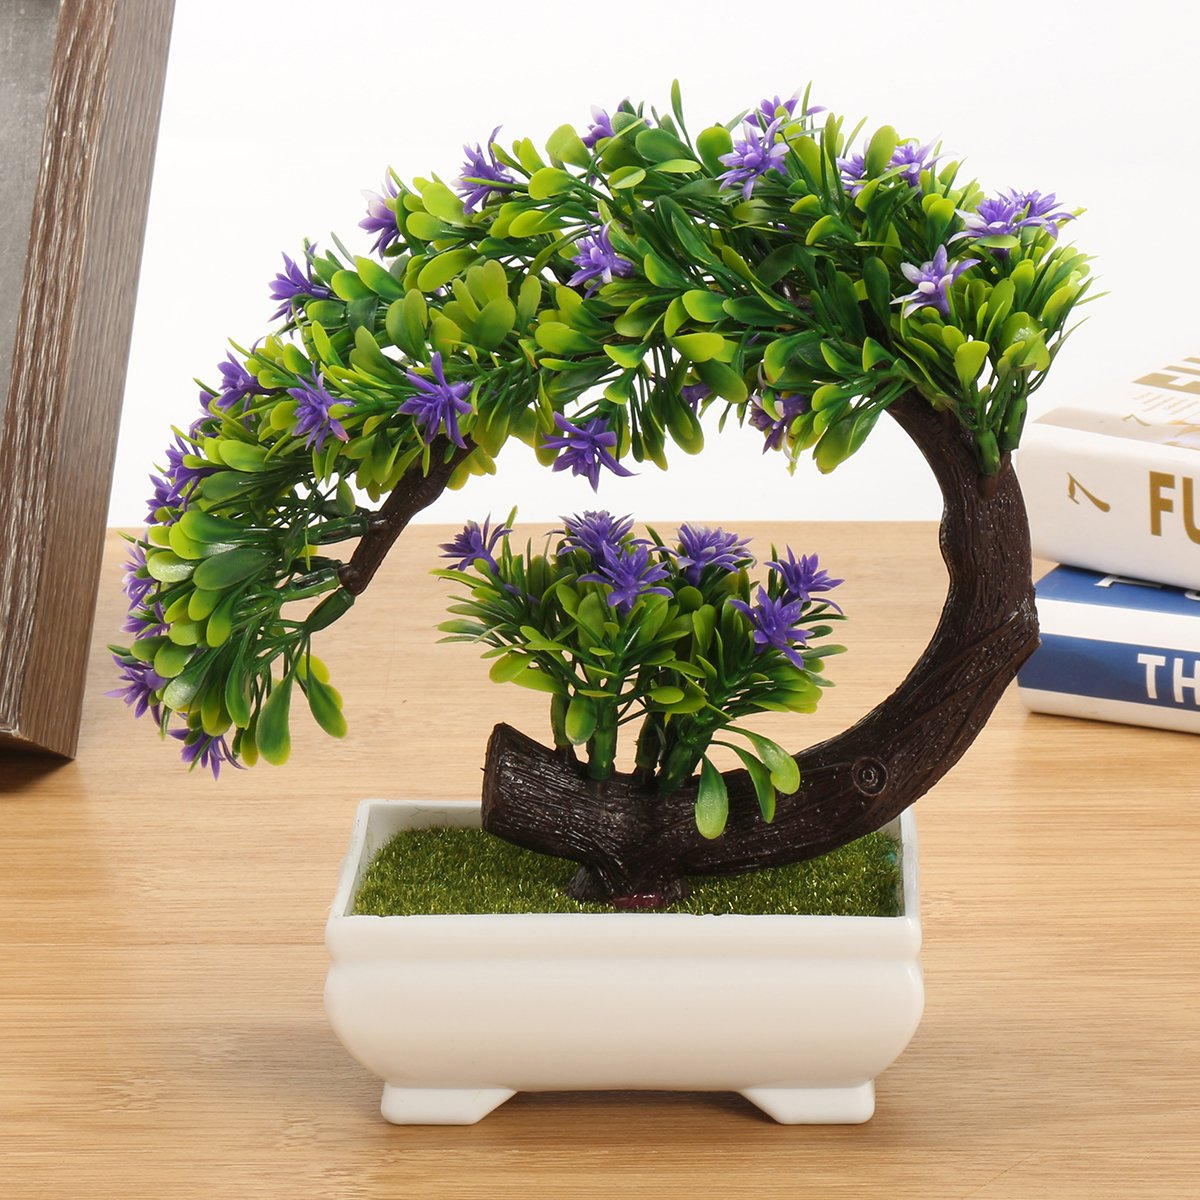 CAVEEN Artificial Topiary Plants in Pot Fake Green Bonsai Tree Decoration for Home Office Desktop Unique Gift #3